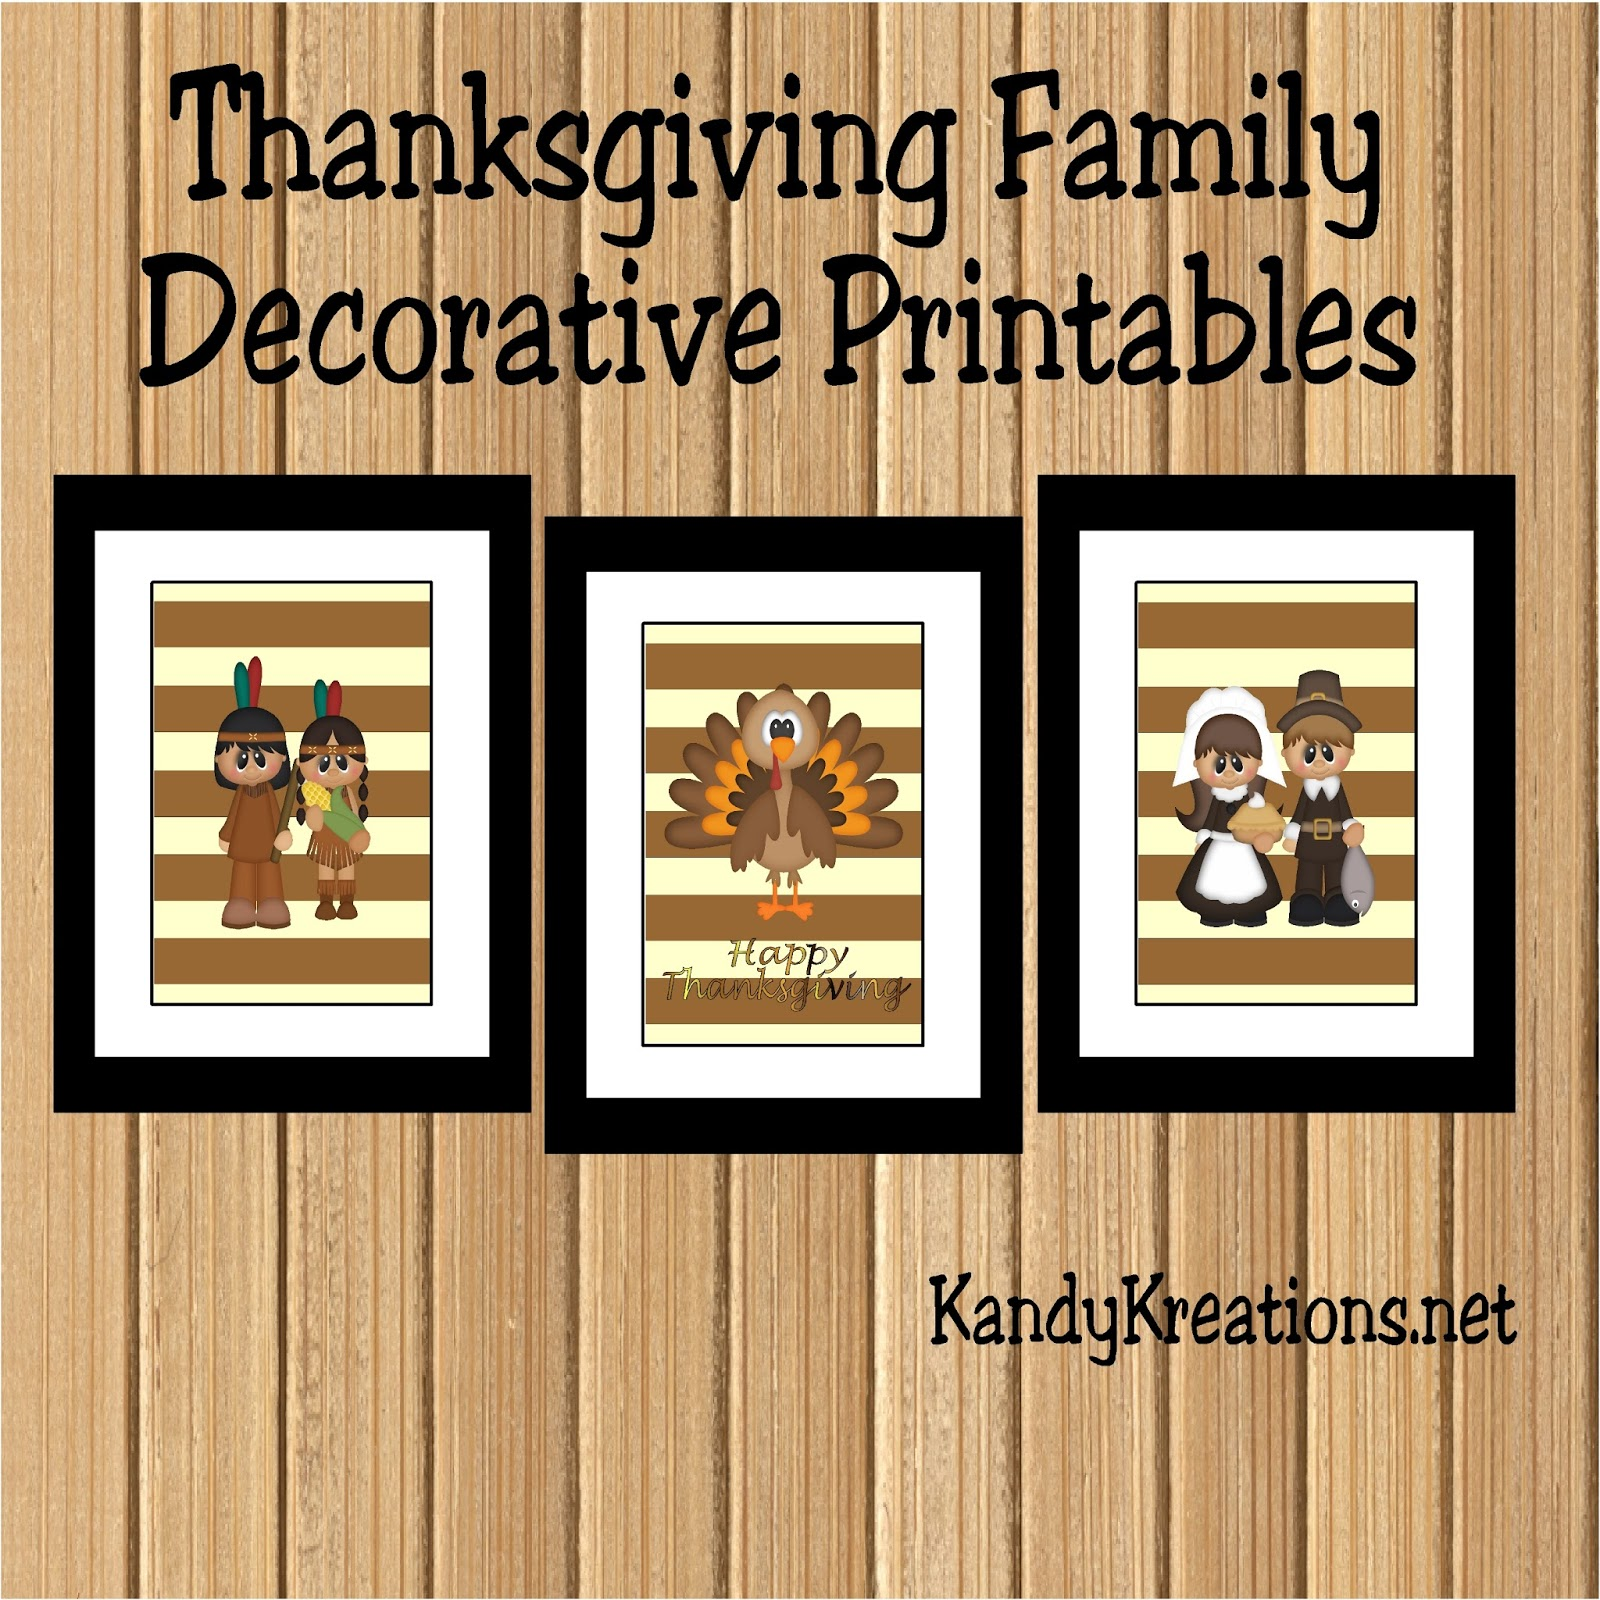 Wall Accents Decor thanksgiving wall decorations - shenra